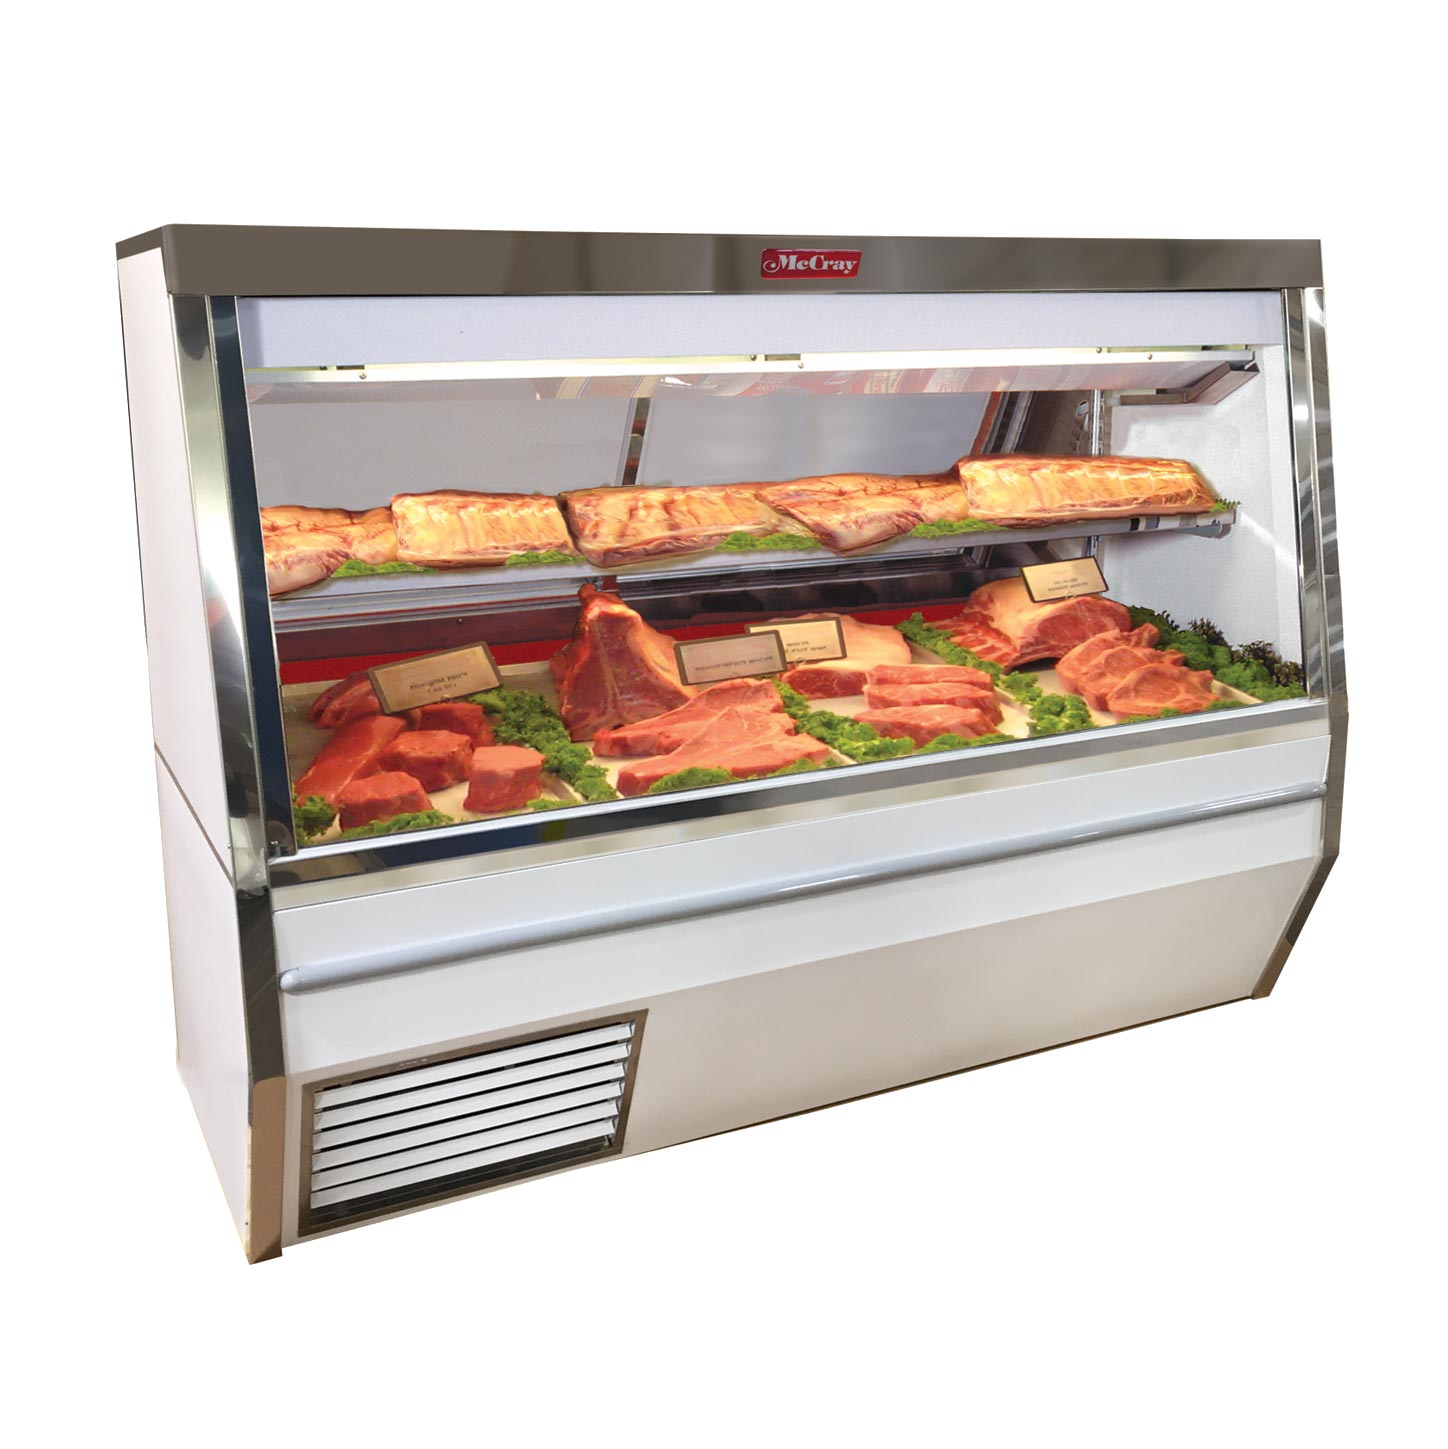 Howard-McCray SC-CMS34N-10-LED display case, red meat deli